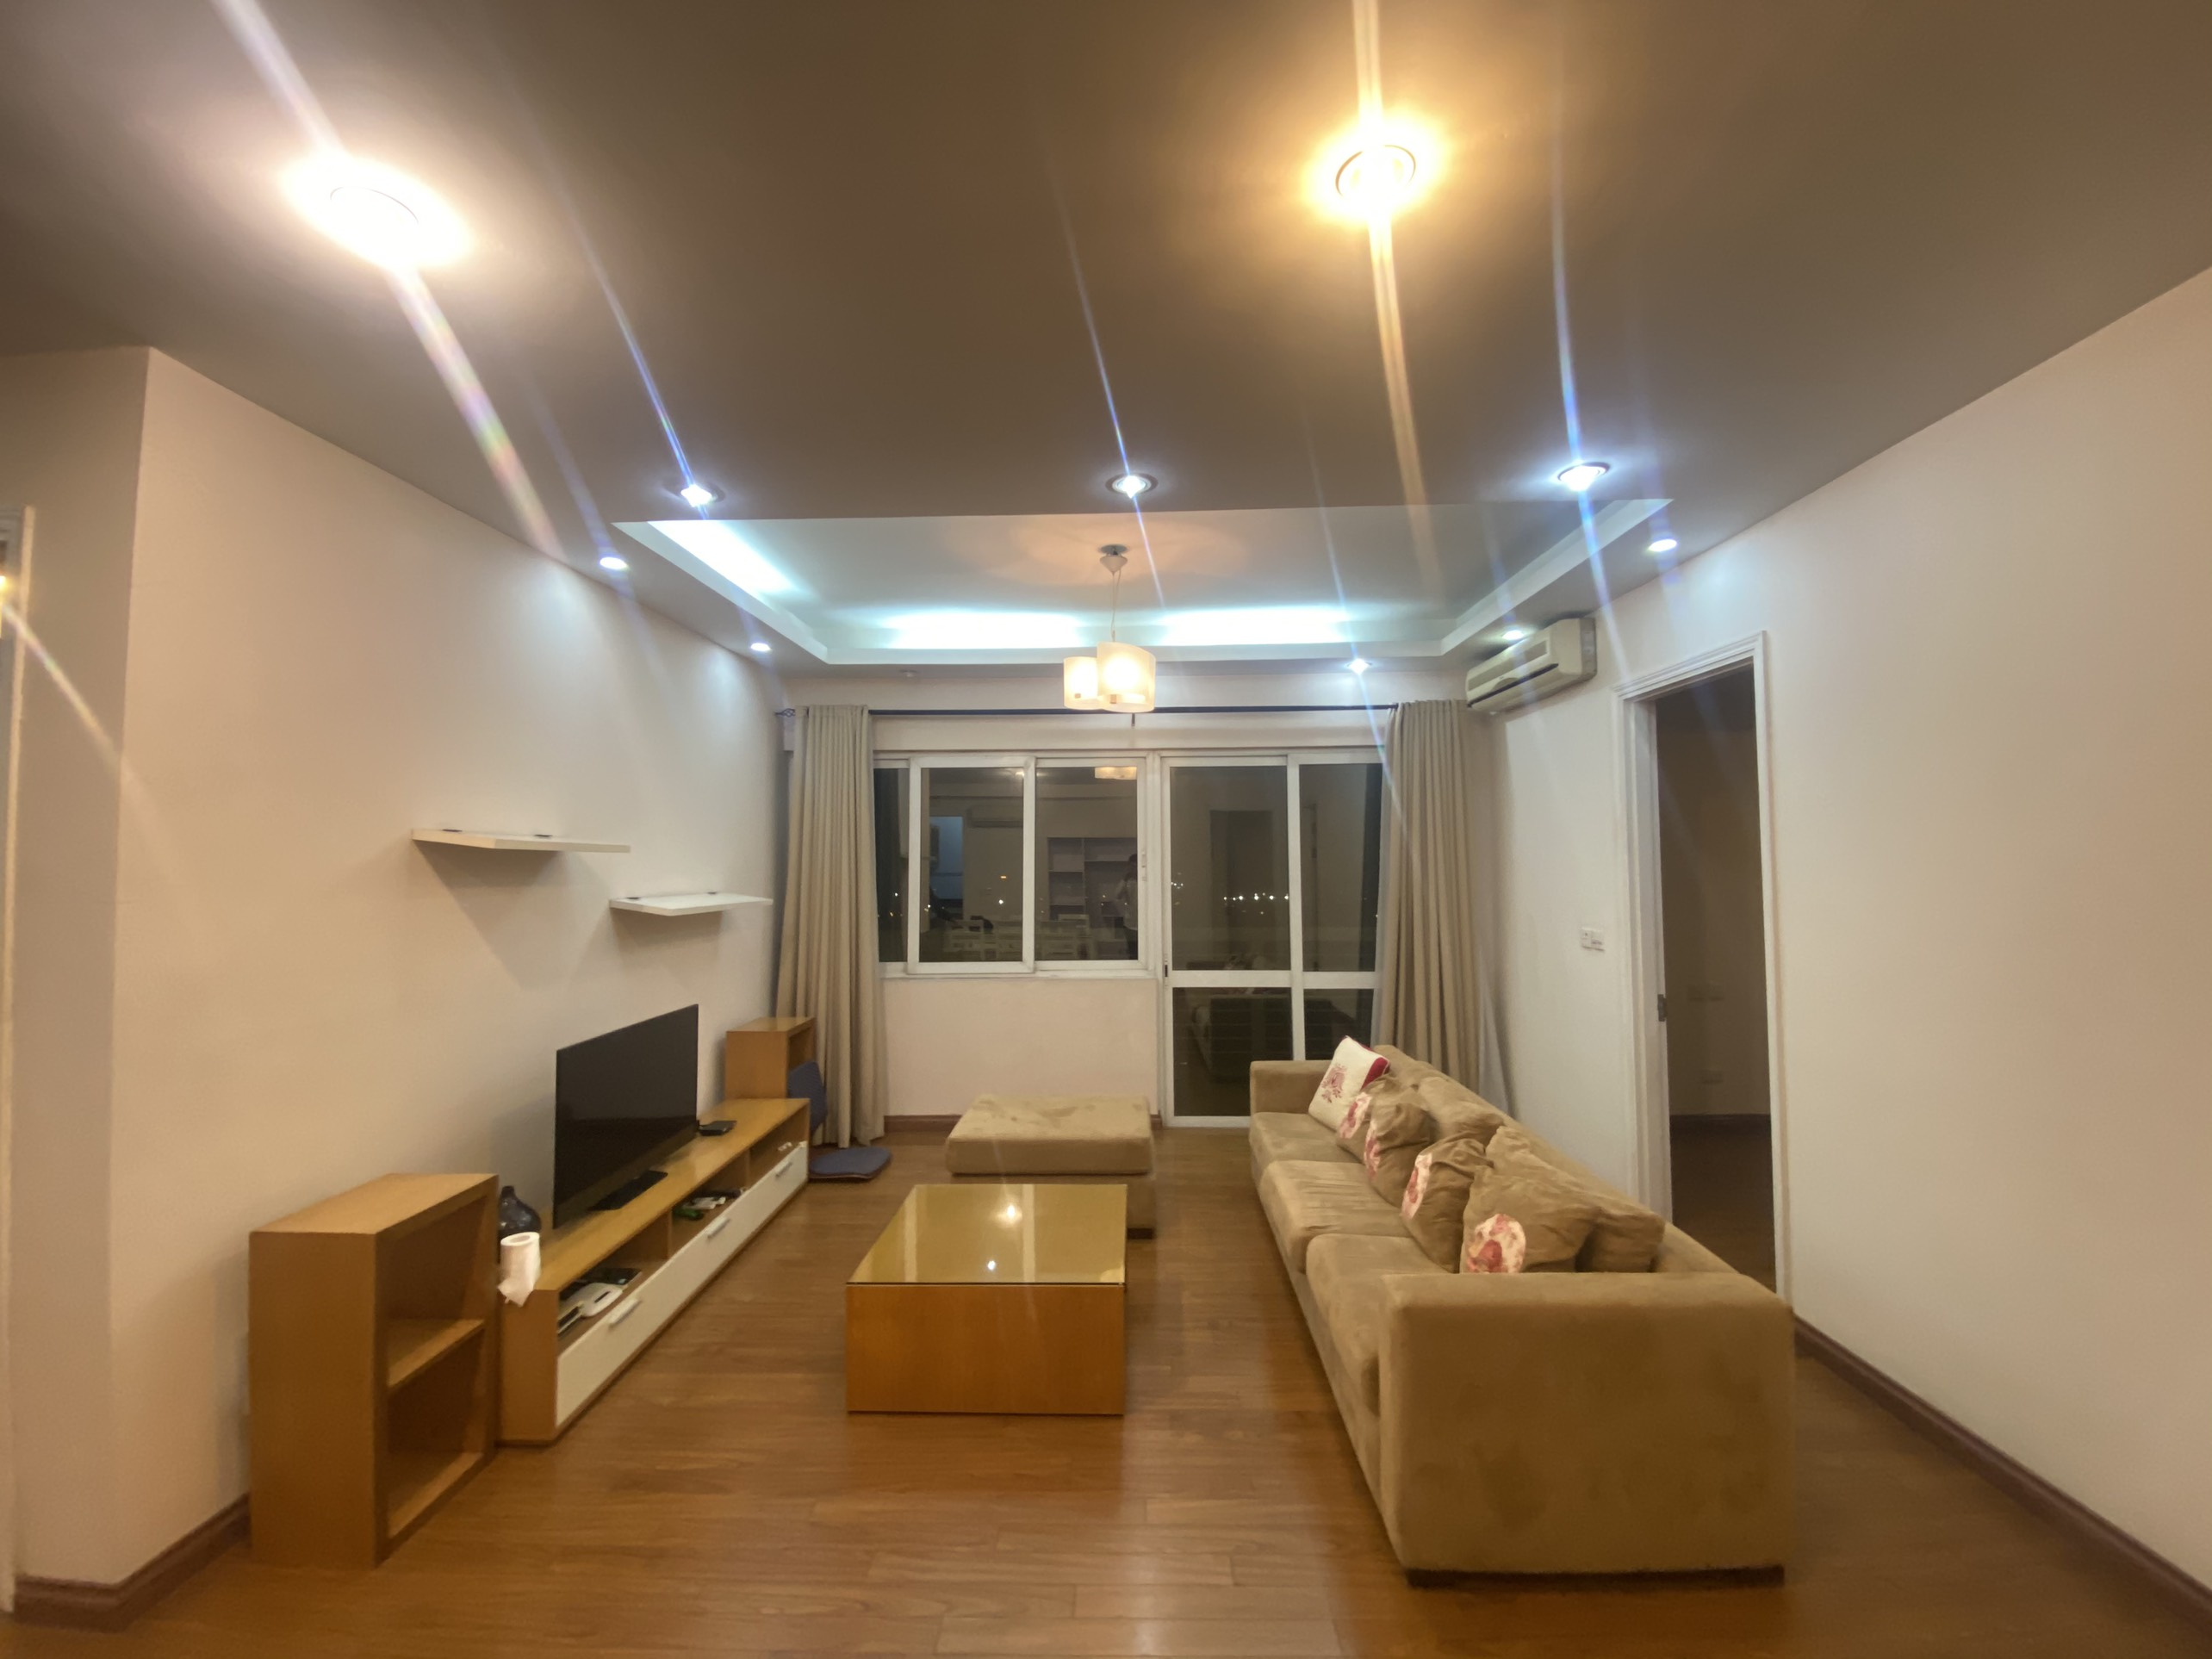 Apartment for rent in area of 153sqm with 4 bedrooms, 3 bathrooms in E5 Ciputra building.